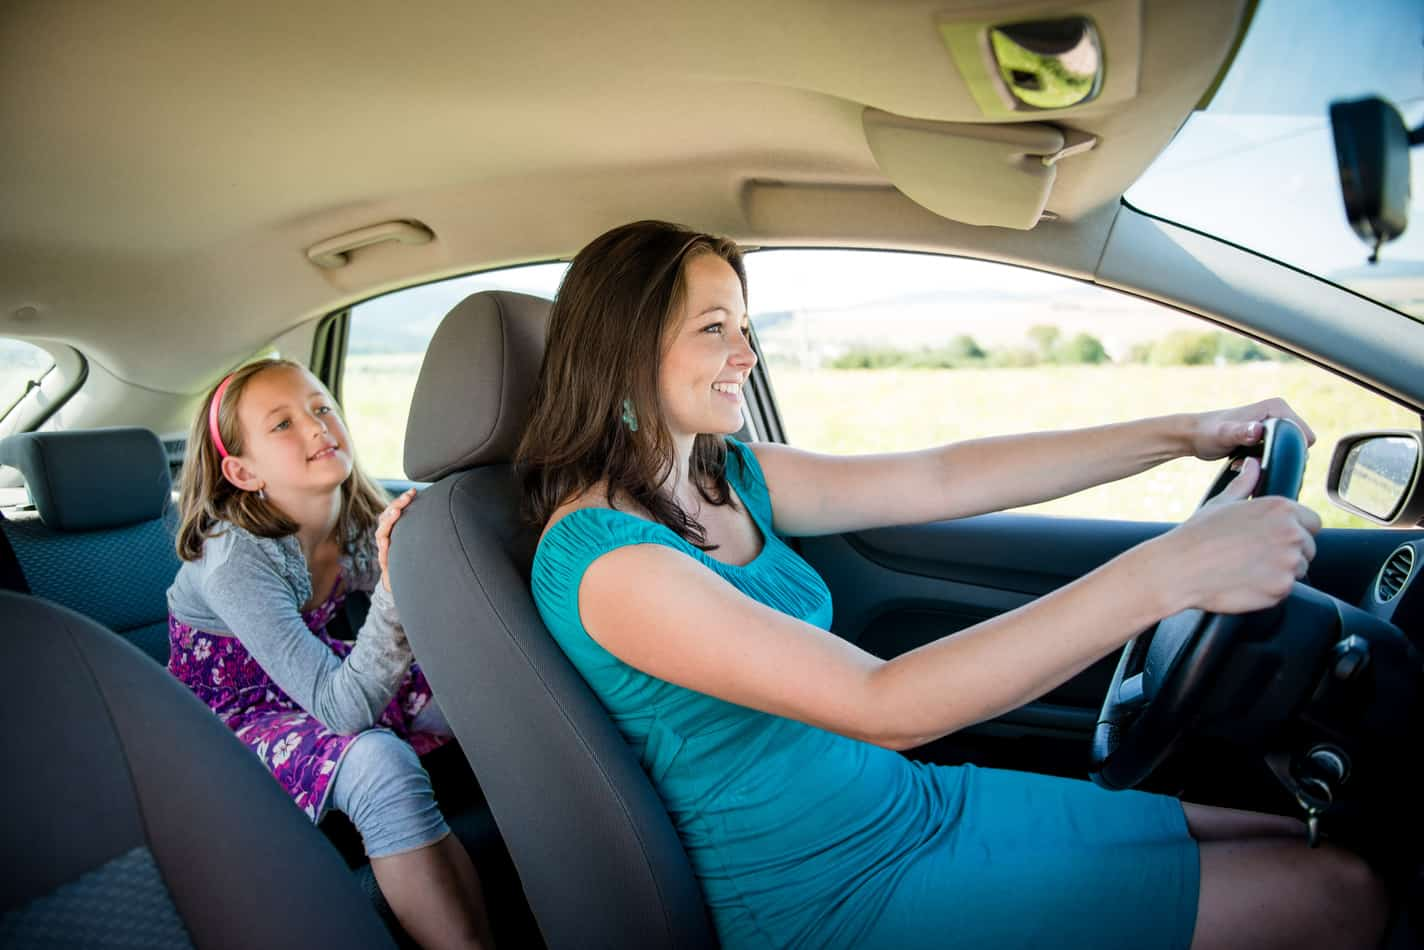 7-Year-Old to Sit in the Front Seat